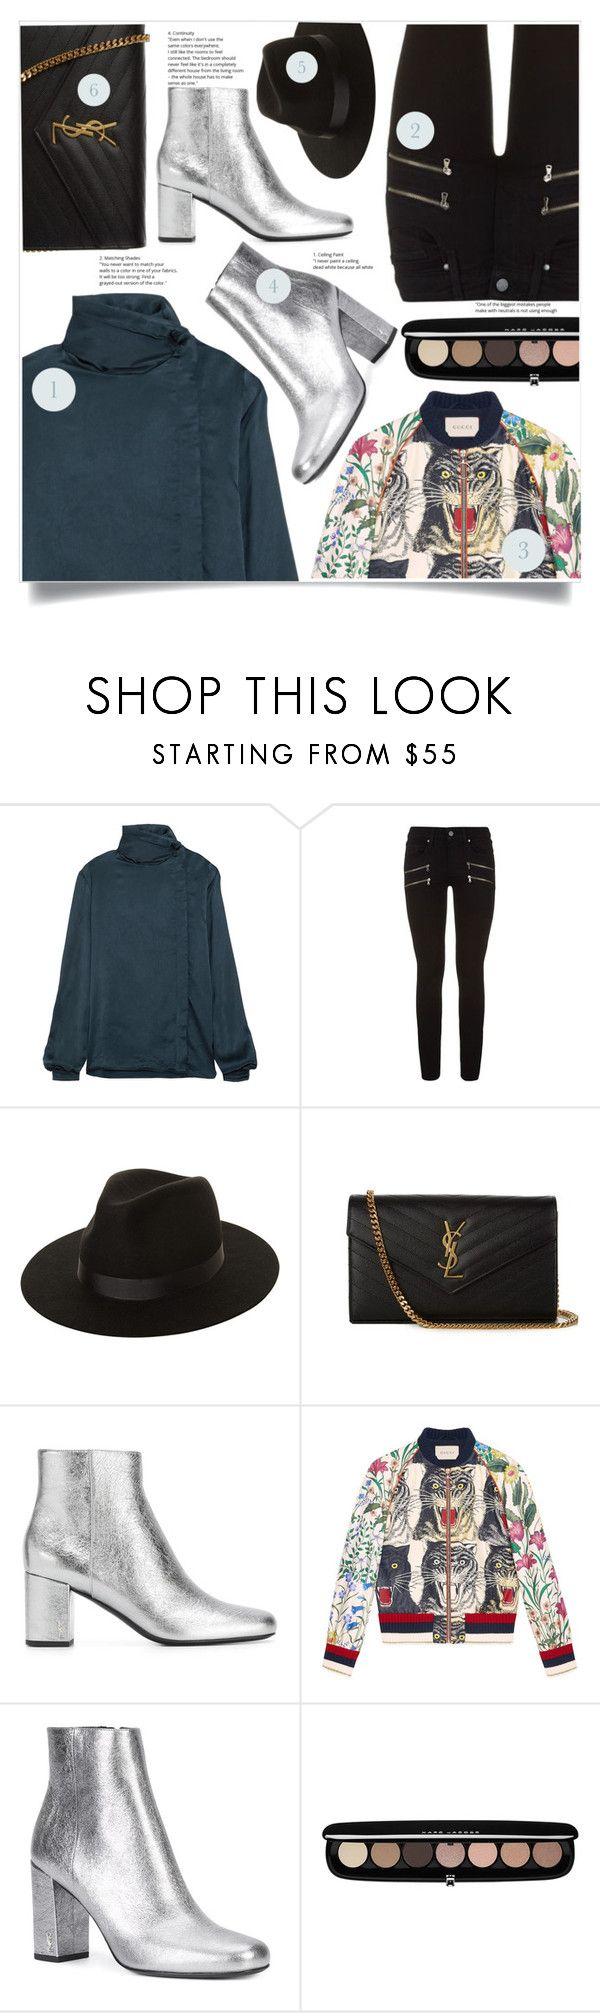 """Senza titolo #2081"" by aanyaa ❤ liked on Polyvore featuring Yves Saint Laurent, Paige Denim, Lack of Color, Gucci, Marc Jacobs and prettyunderpinnings"